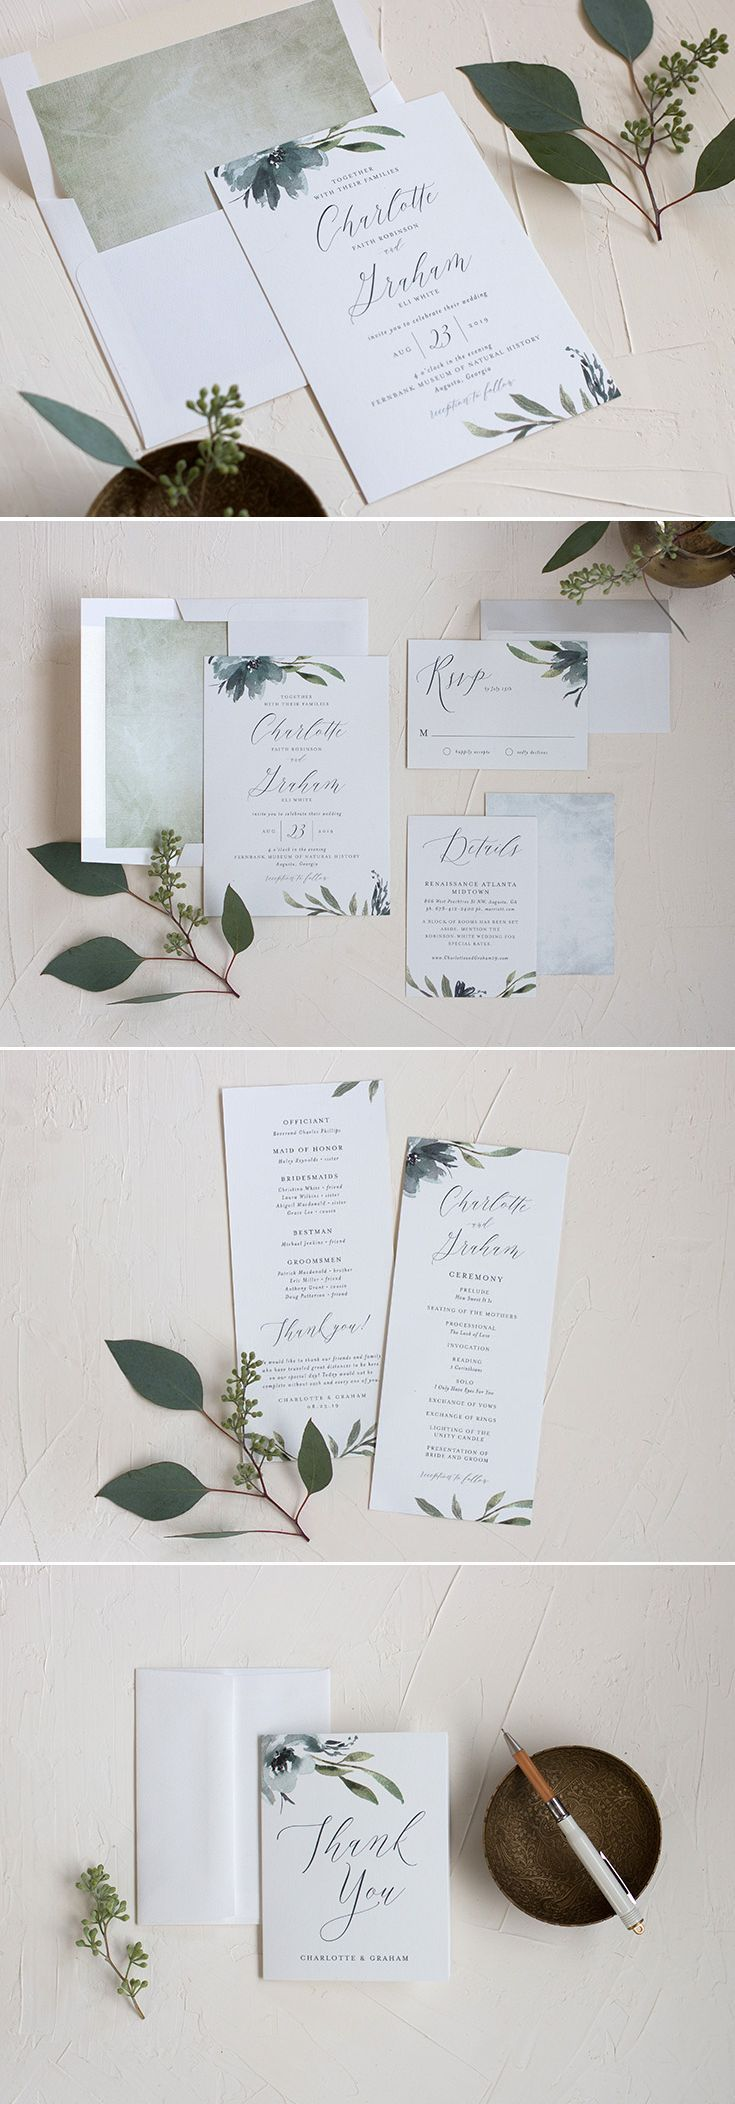 wildflower wedding invitation templates%0A Muted Floral Wedding Invitation Suite with greenery and florals